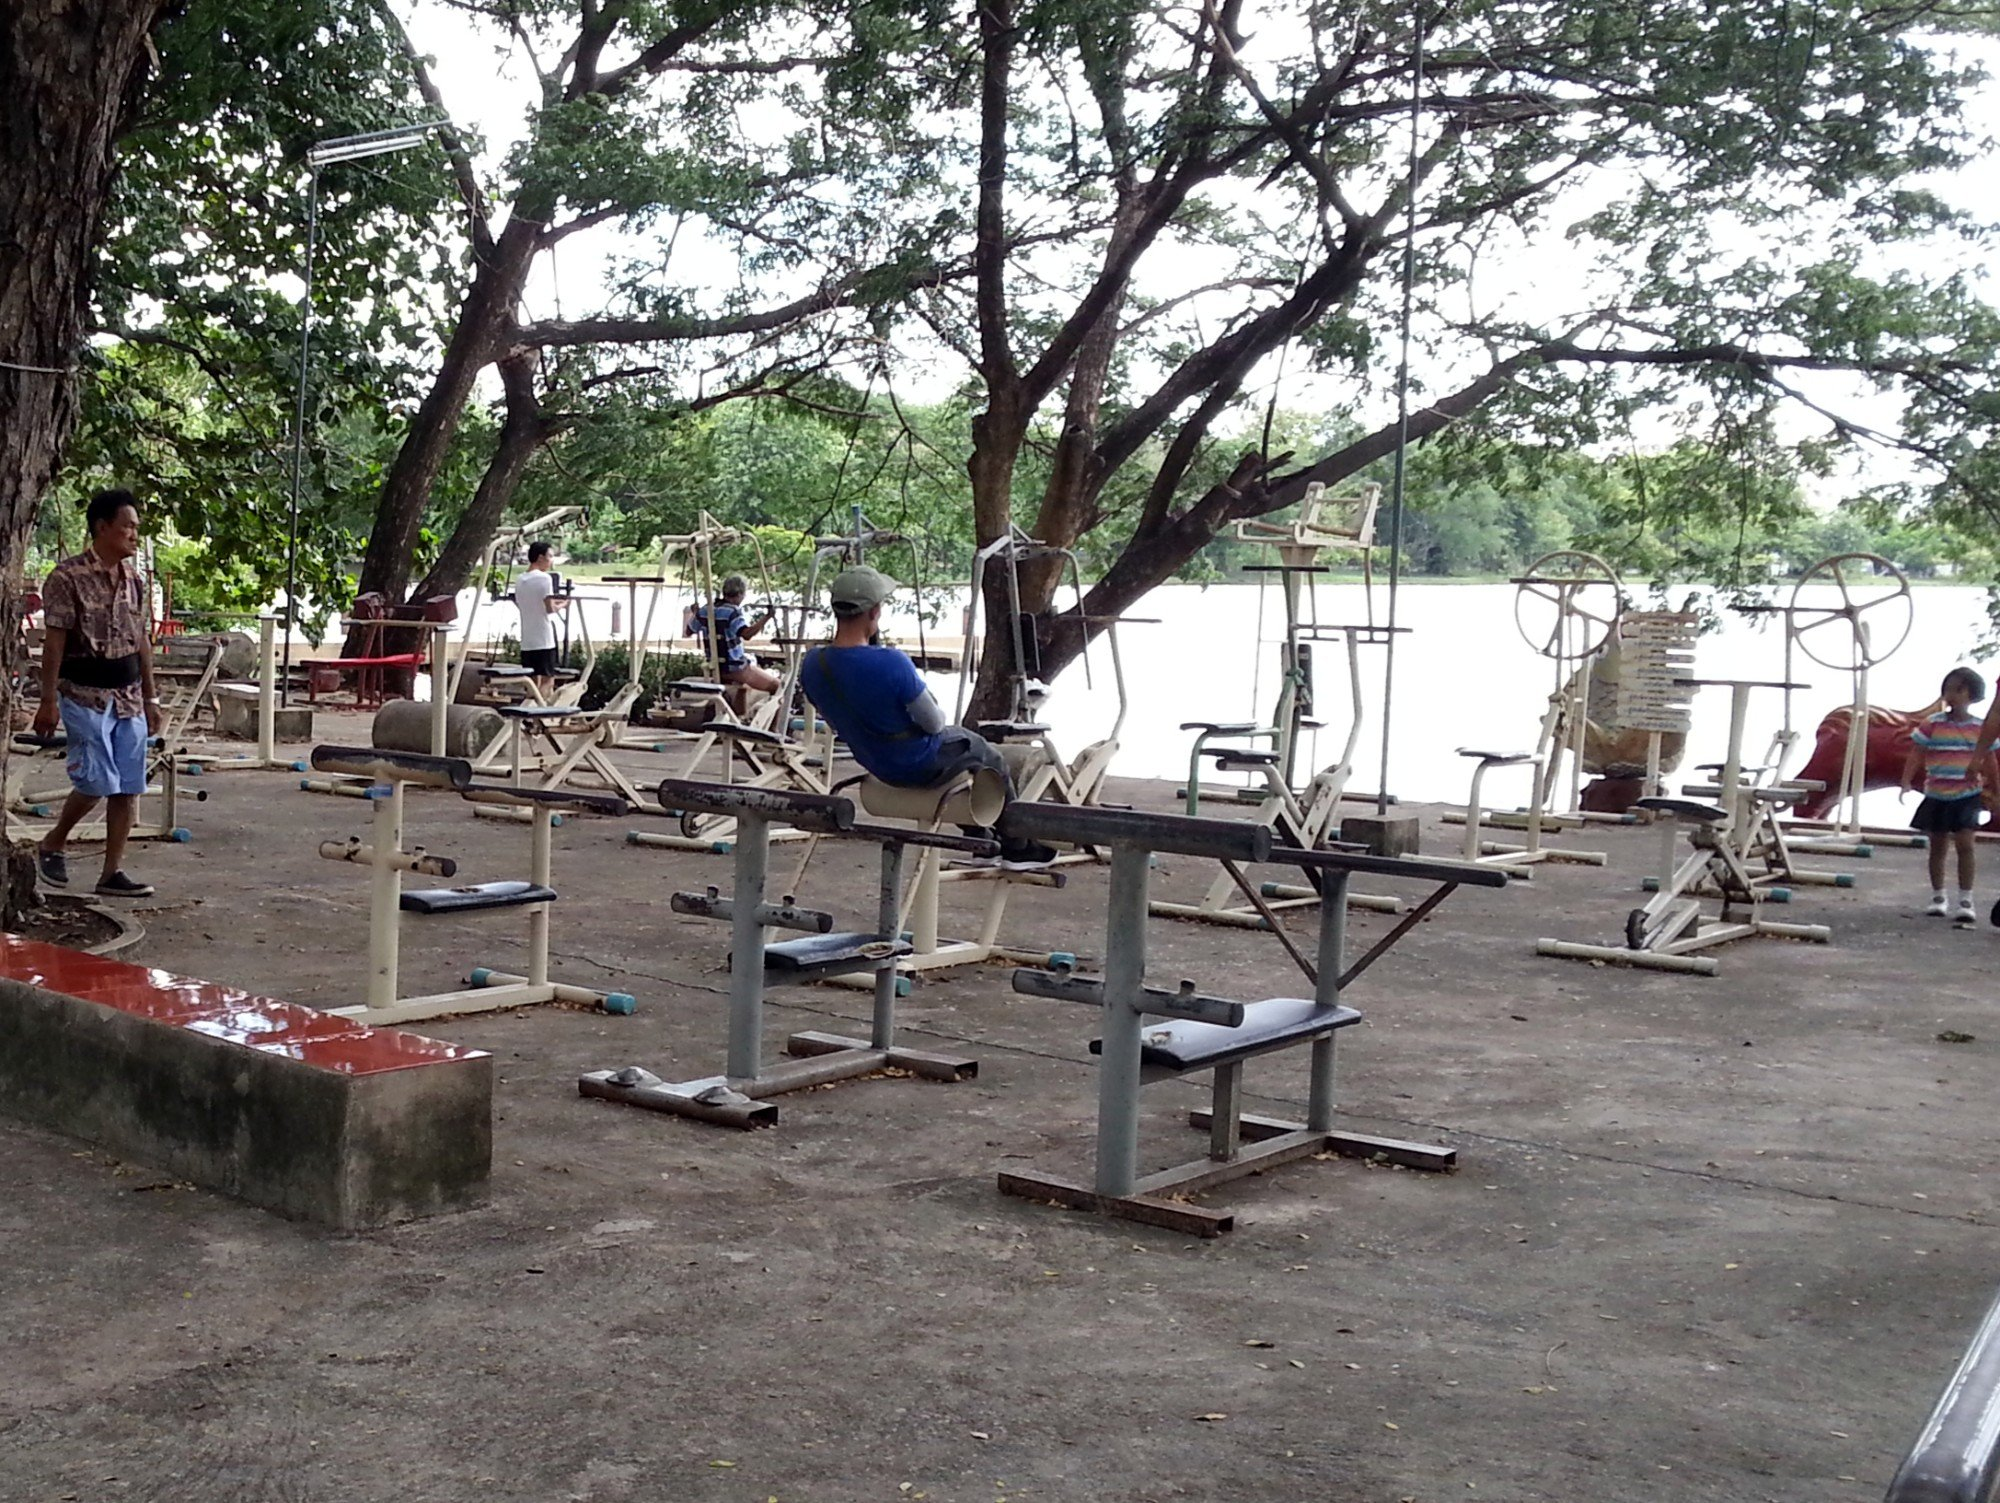 Gym equipment in Paradise Park